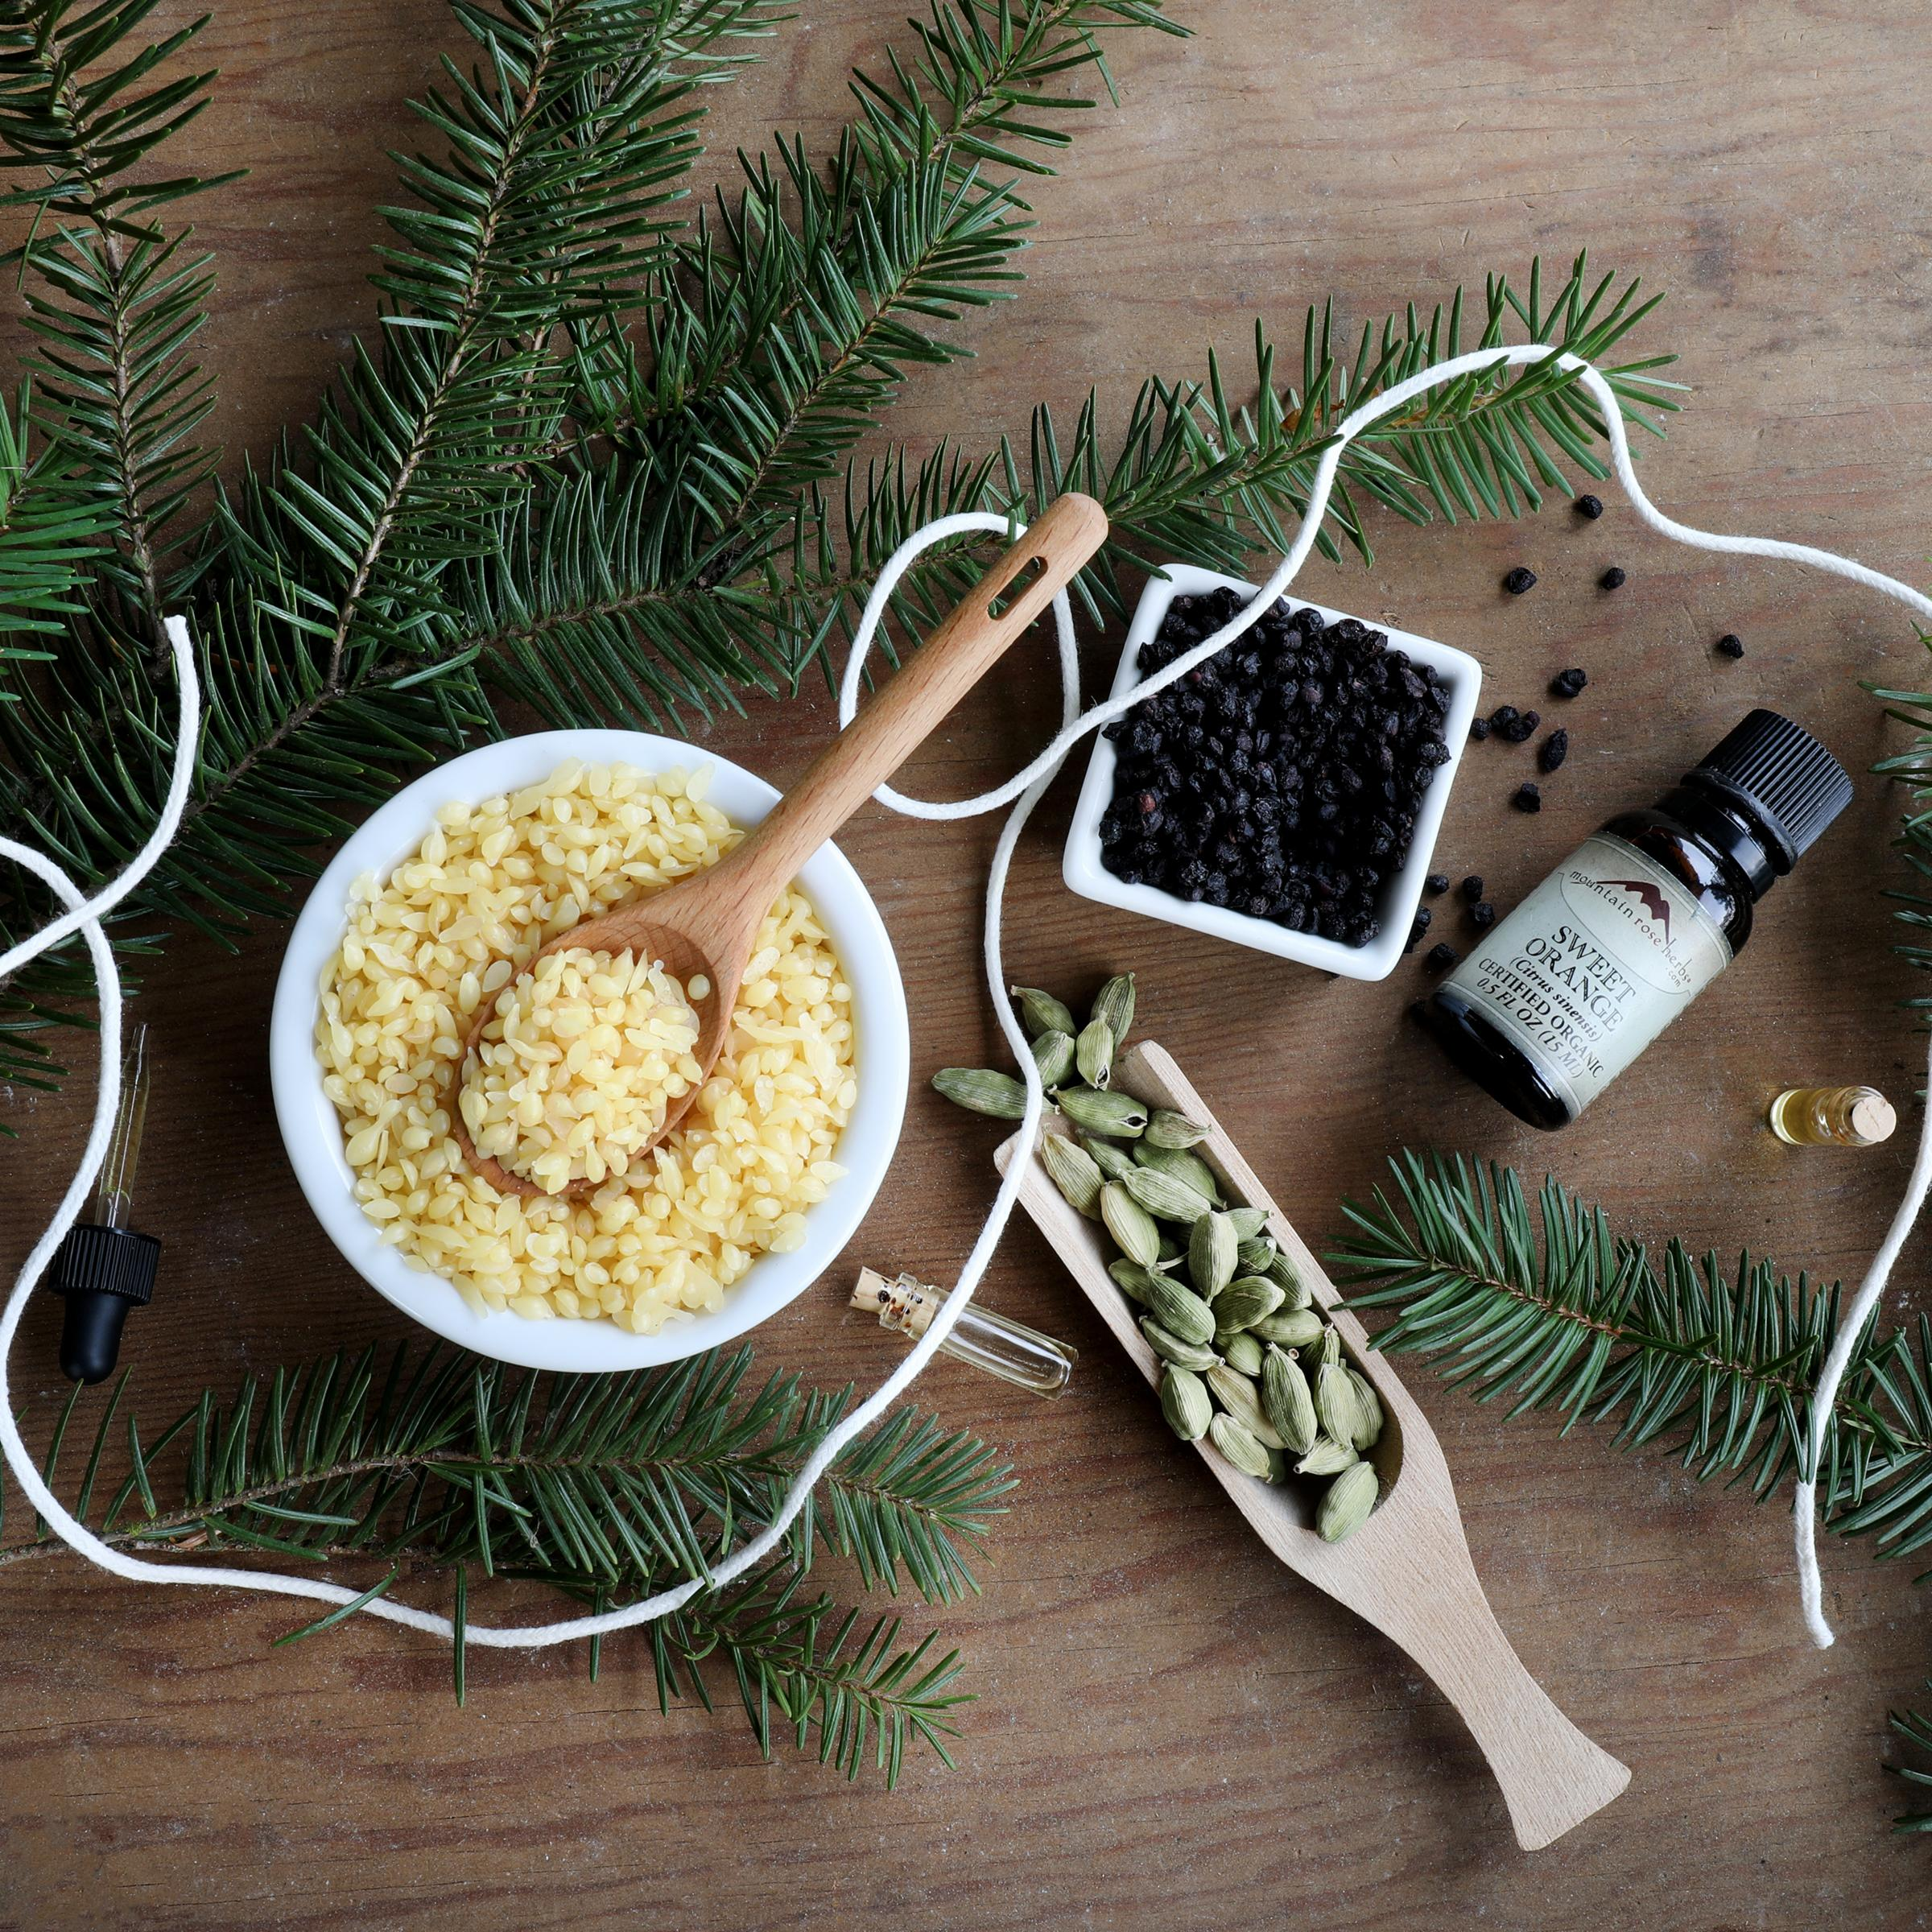 Displayed DIY ingredients with evergreen sprigs